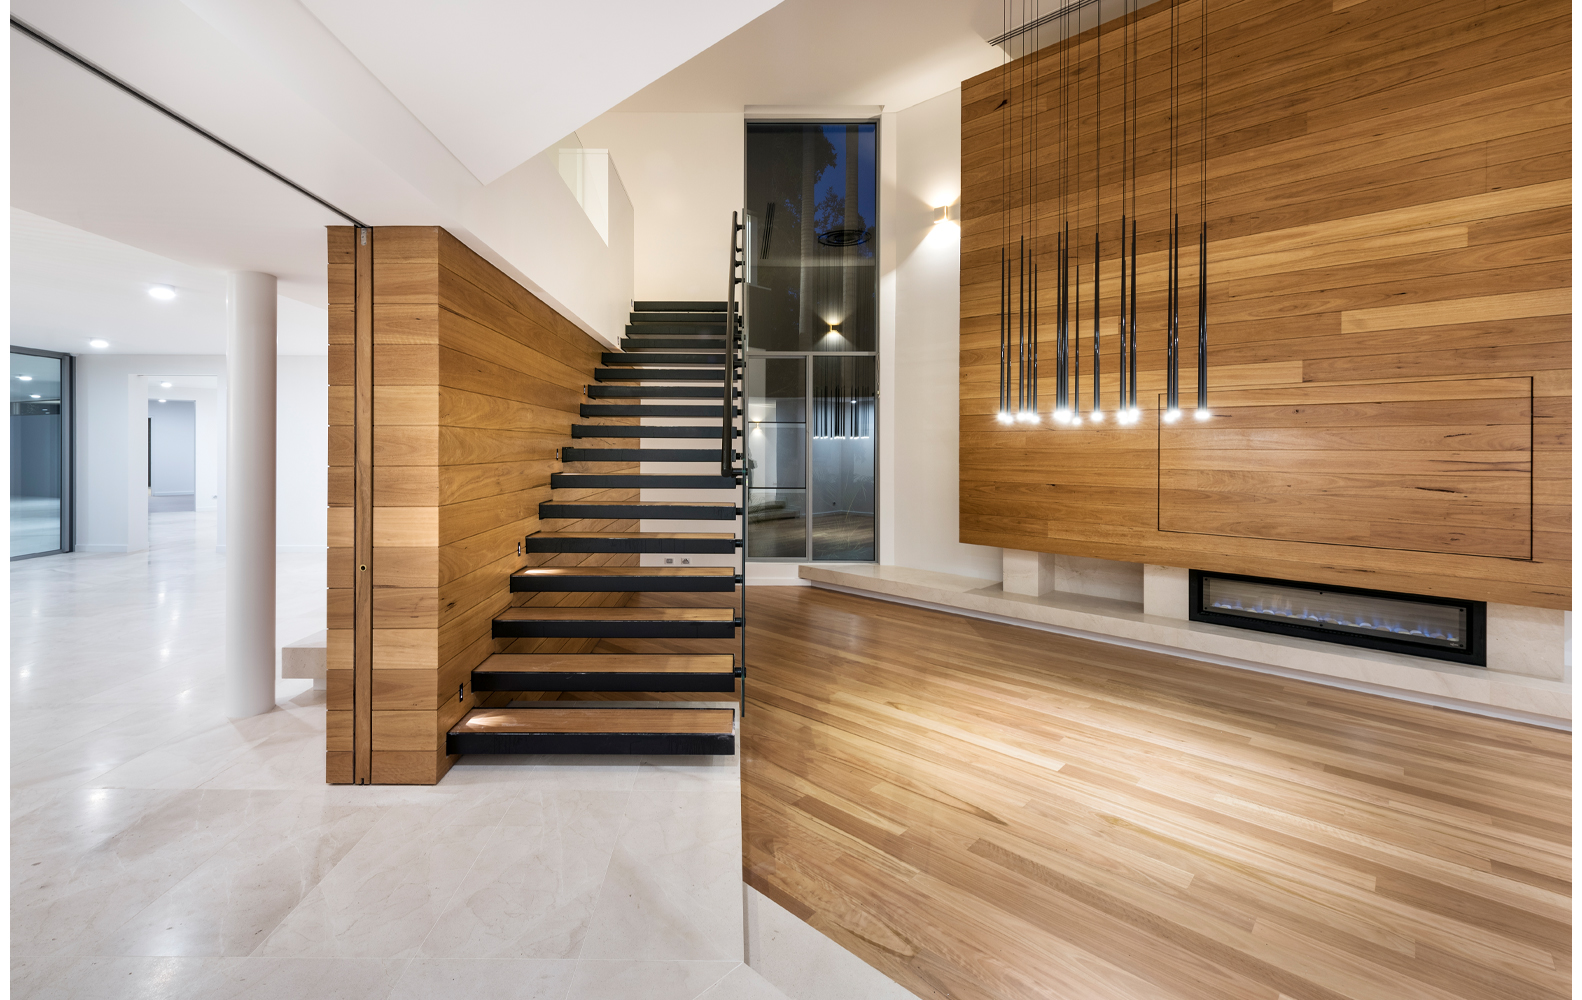 maek-luxury-home-design-inspiration-dalkeith-stairs-6.jpg